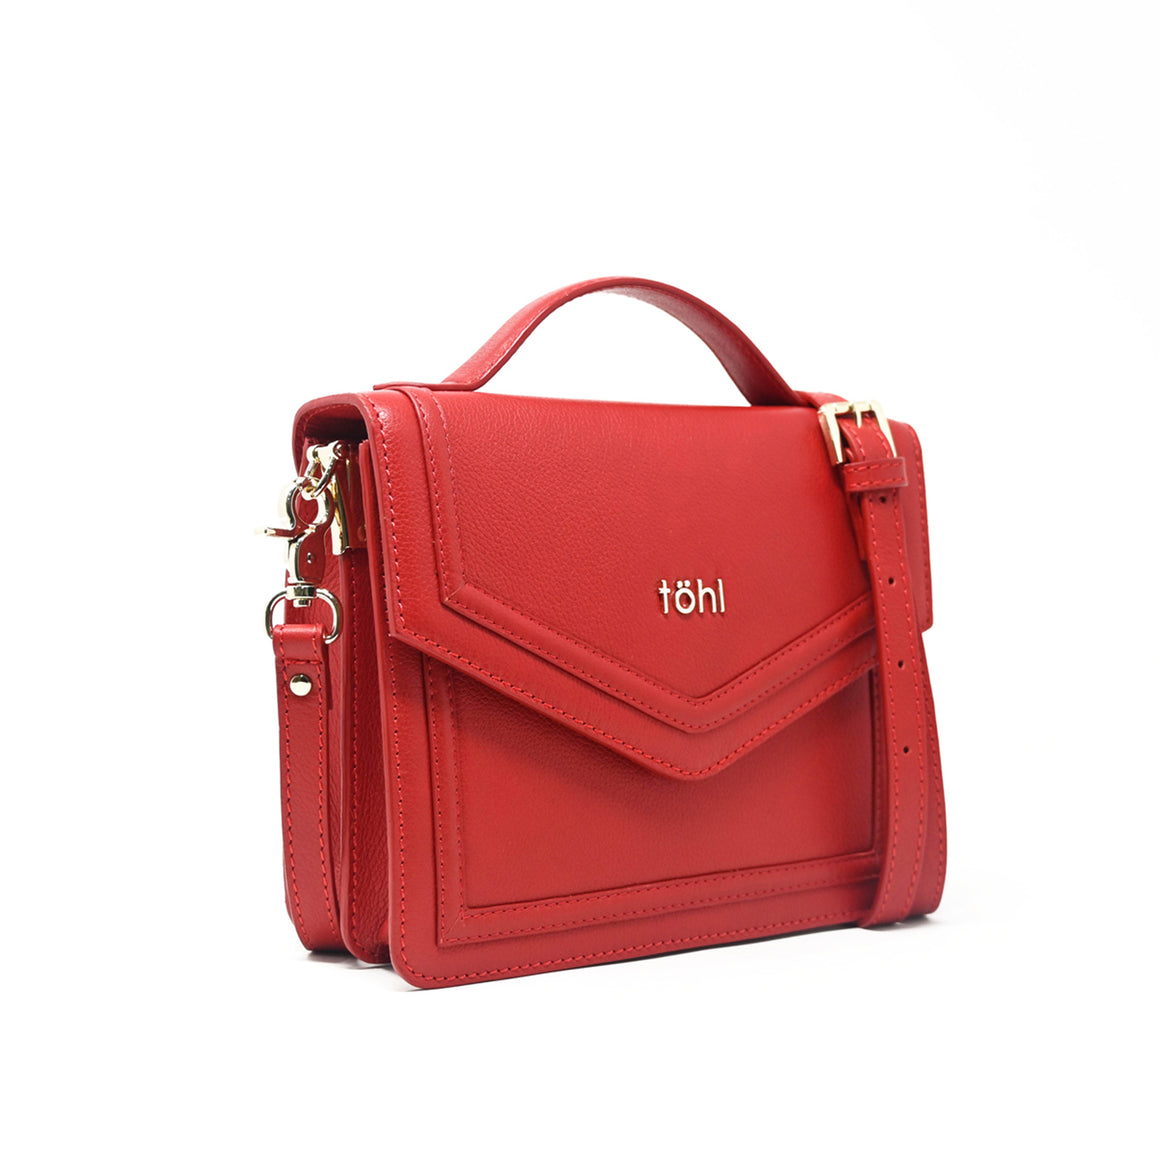 SG0034 - TOHL AVON WOMEN'S CROSS-BODY BAG - SPICE RED